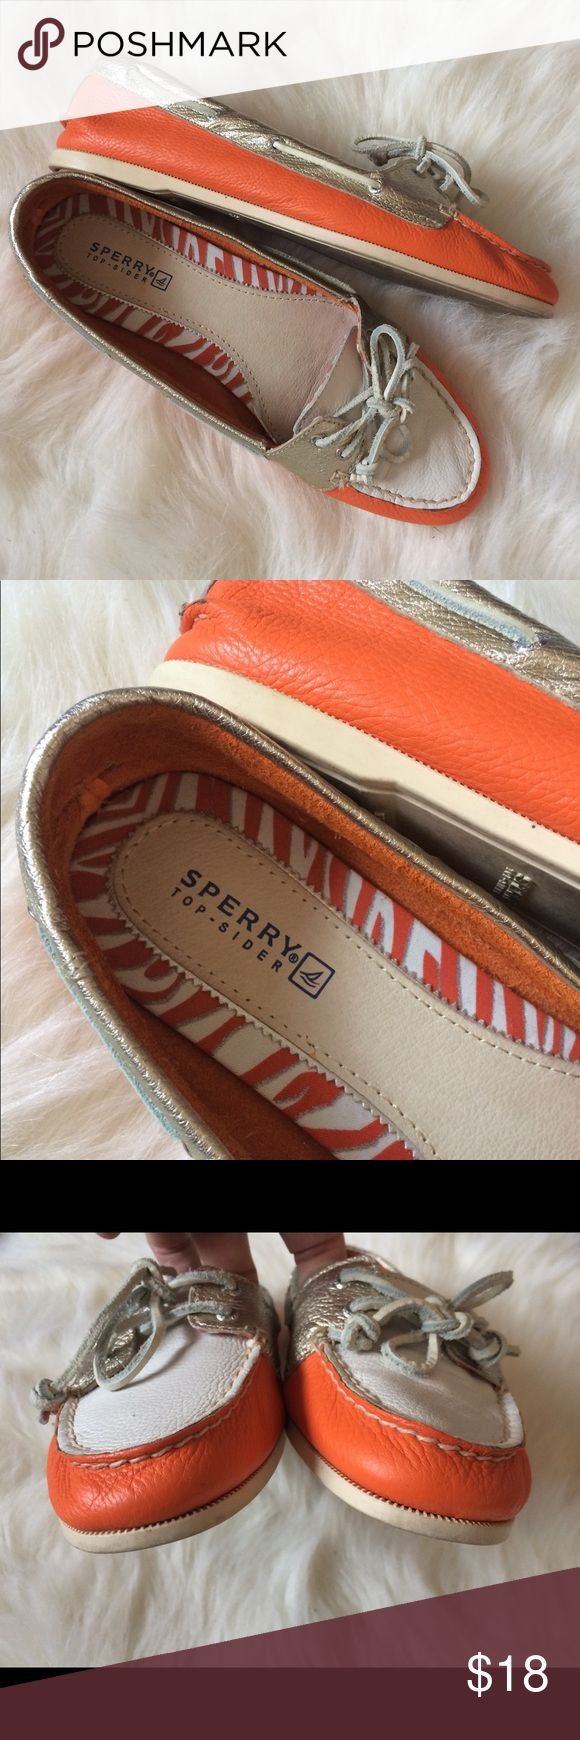 Sperry orange white and gold boat shoe flats Sperry orange white and gold boat shoe flats. Womens size 8. Leather upper. Unlined. Soft and flexible. No defects Sperry Top-Sider Shoes Flats & Loafers